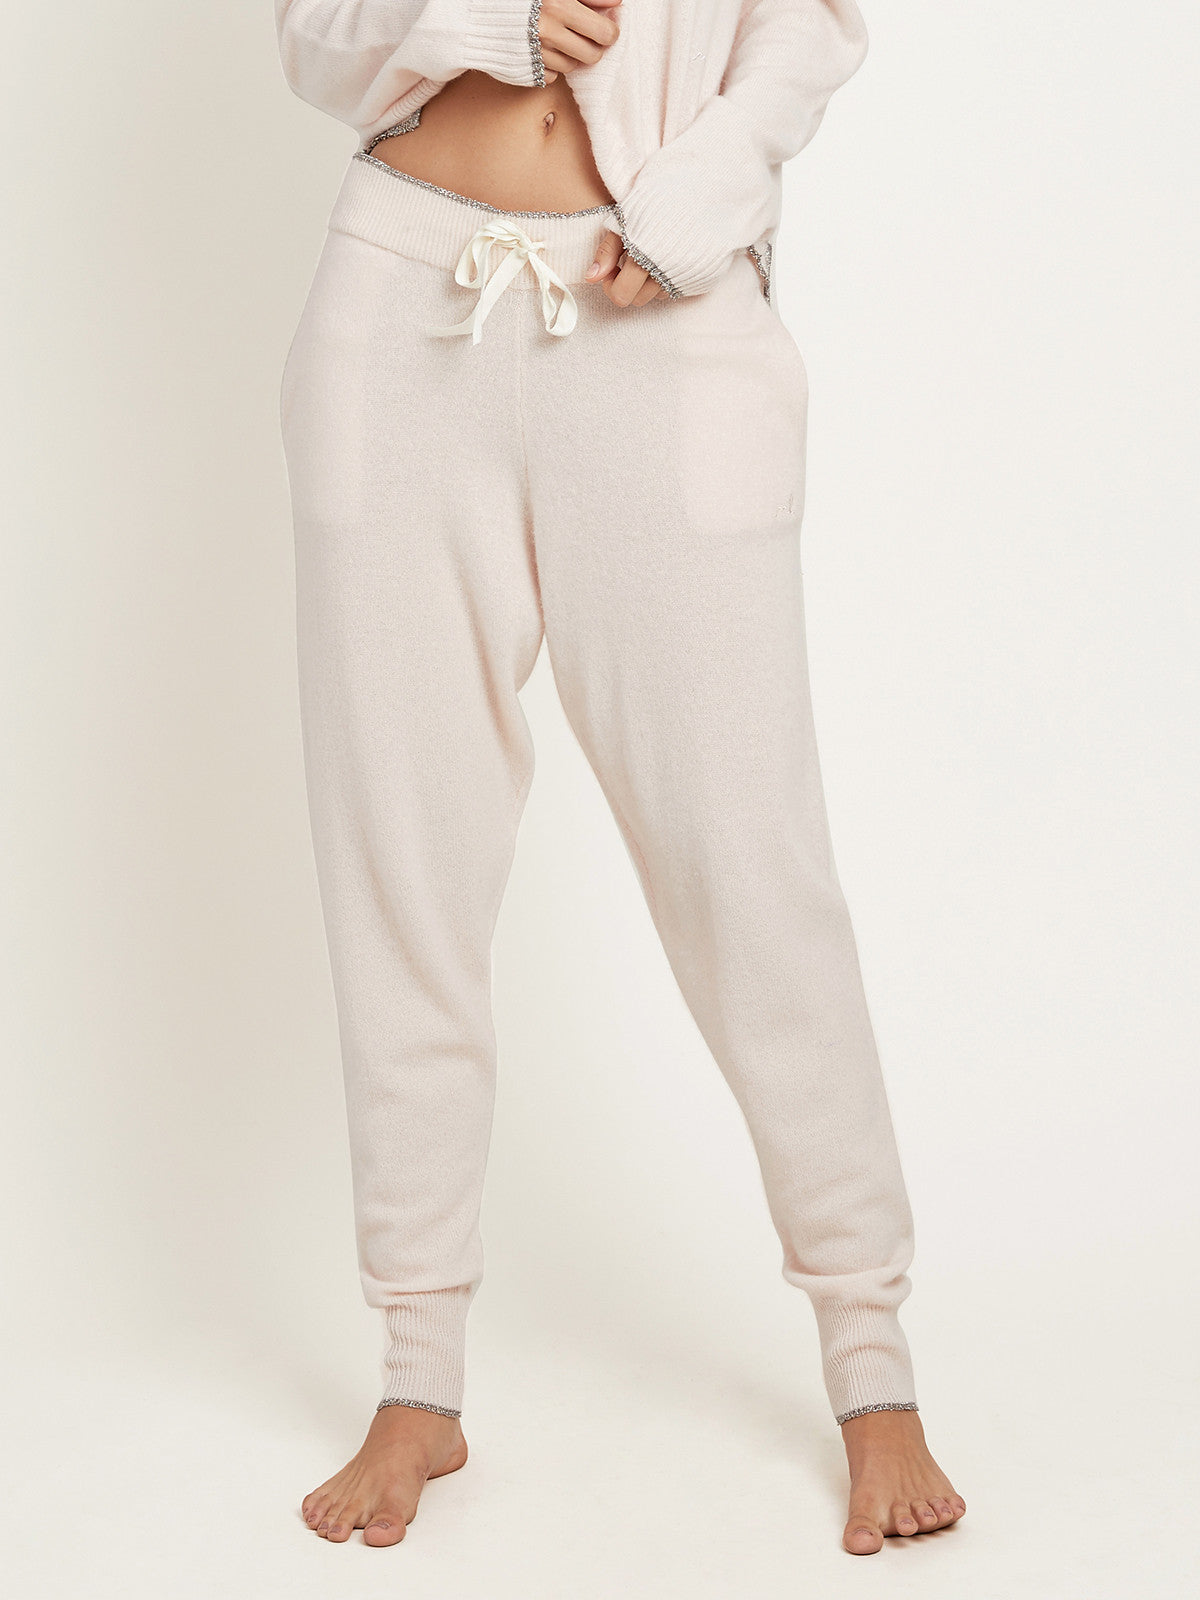 Hailey Pant in Cashmere Vanilla By Morgan Lane